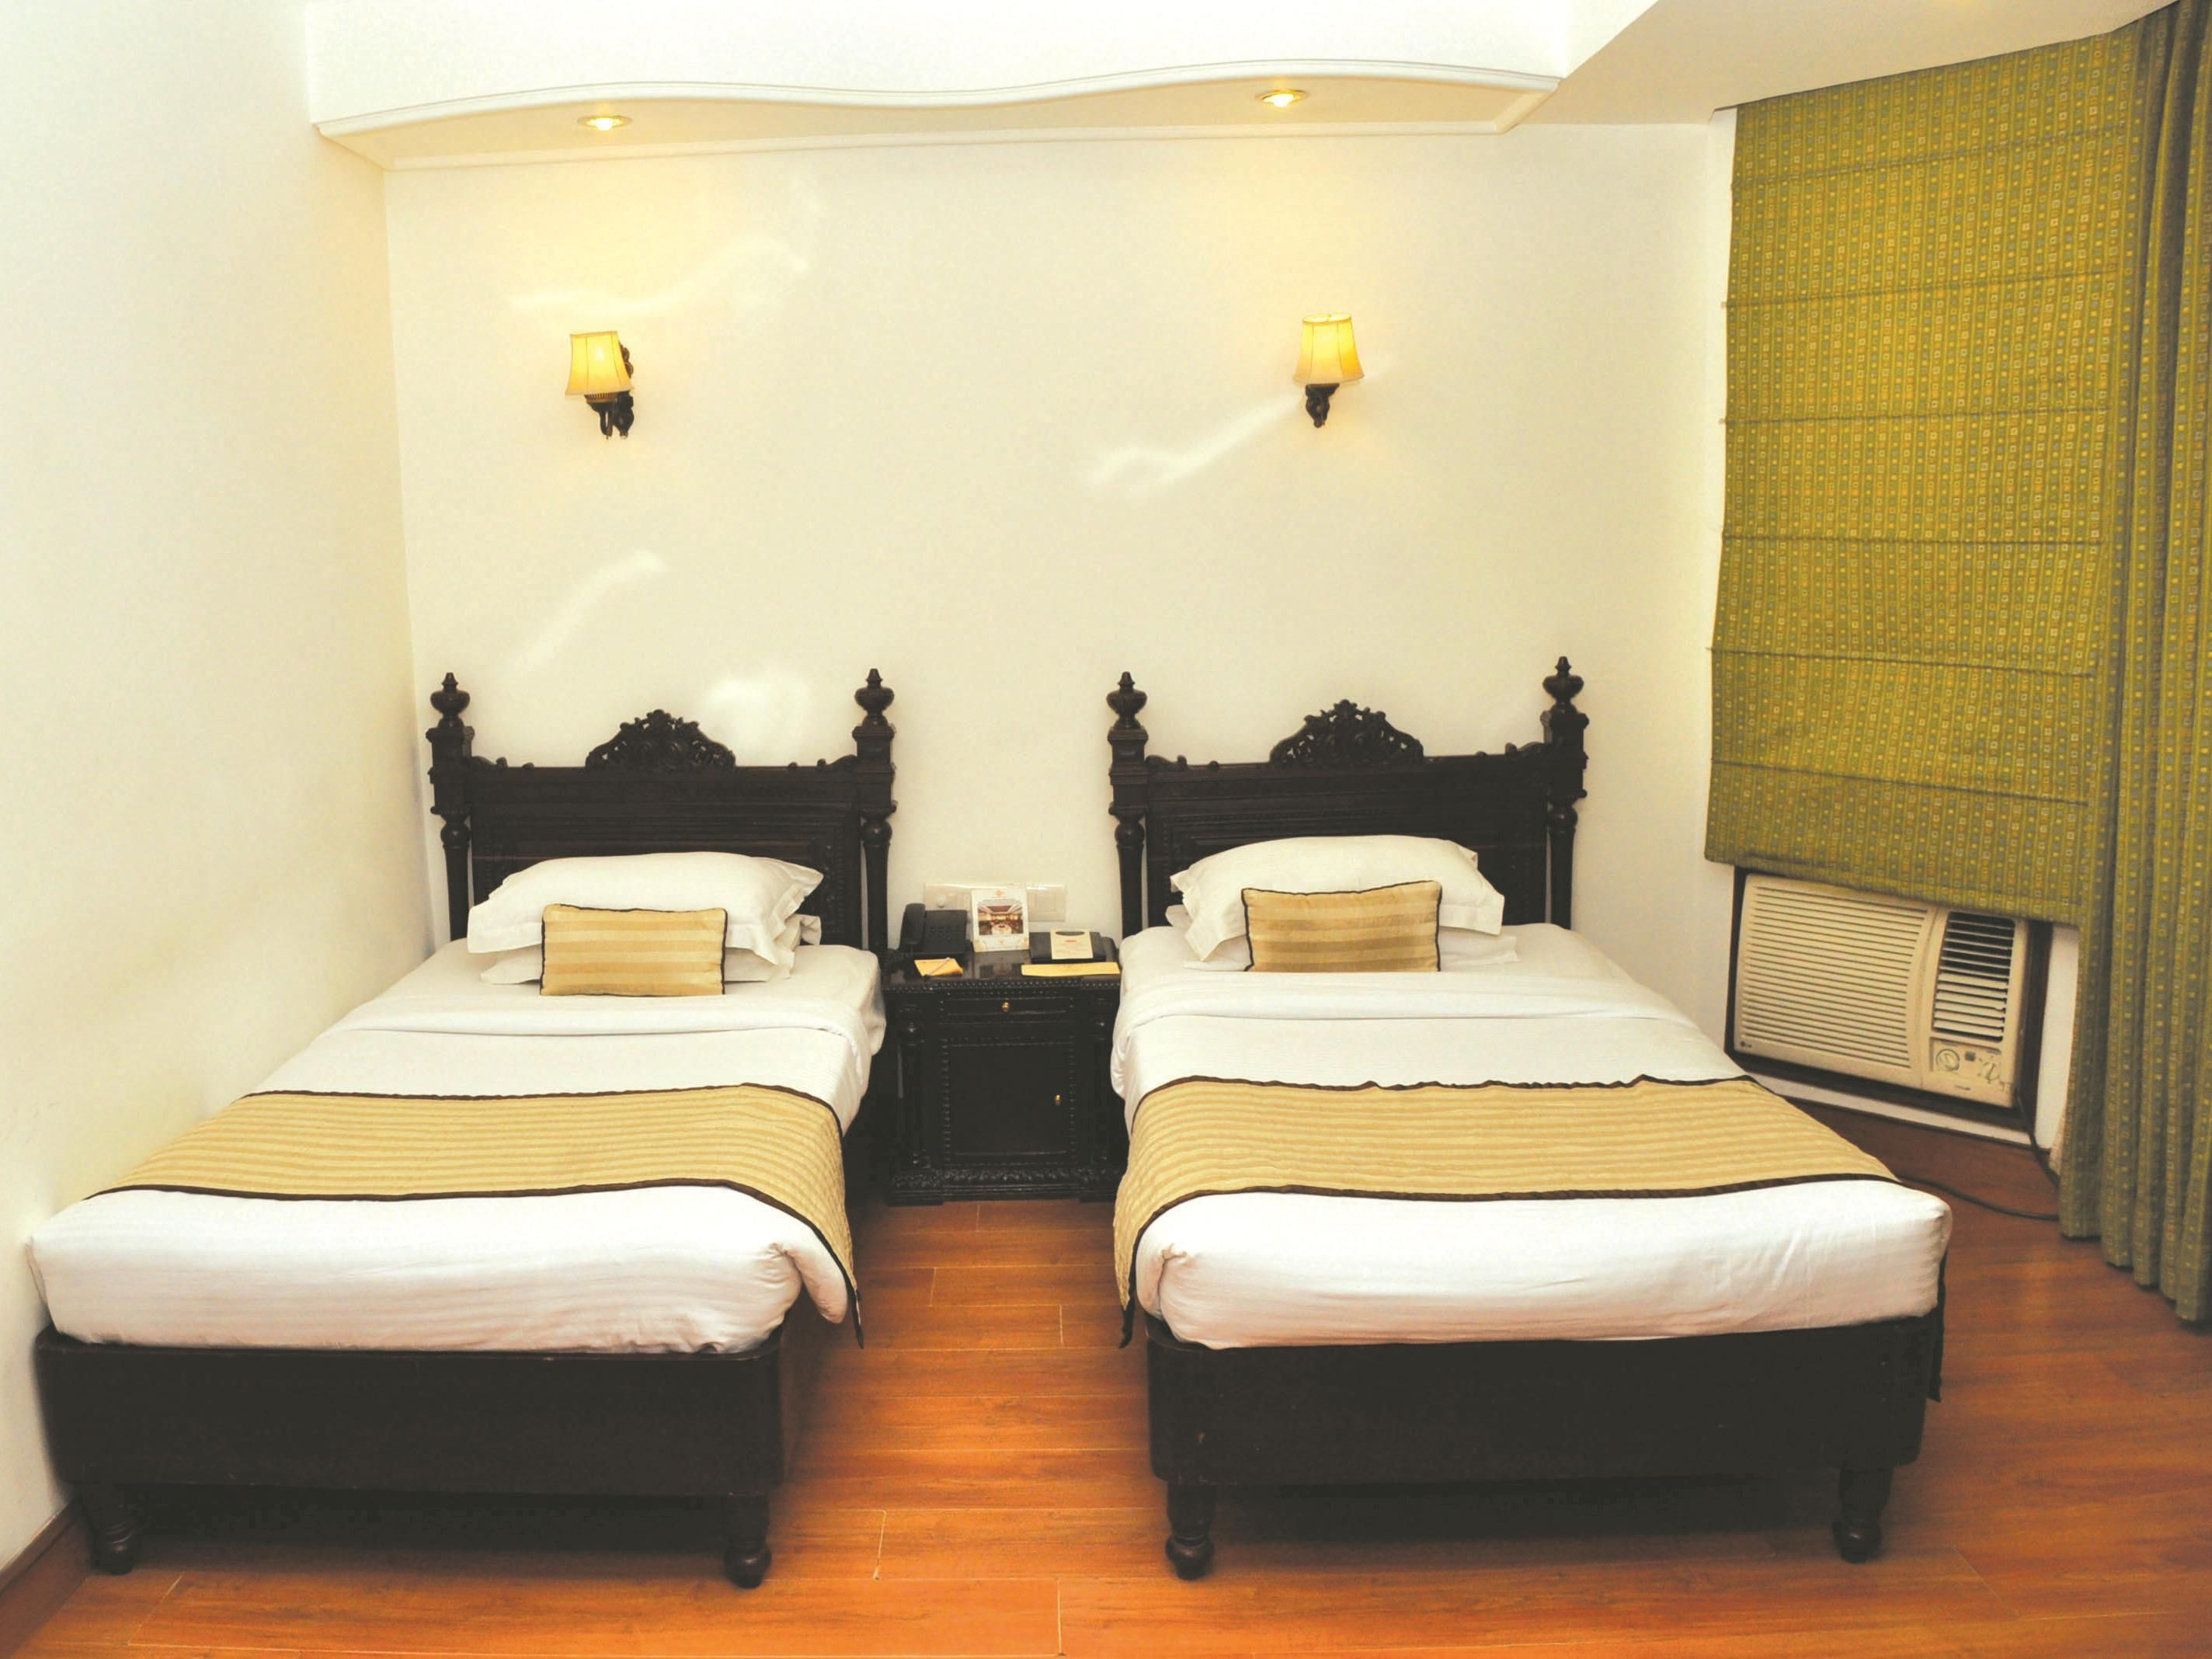 Hotel Prime Residency New Delhi And Ncr Hotel Park Residency India Asia Ideally Located